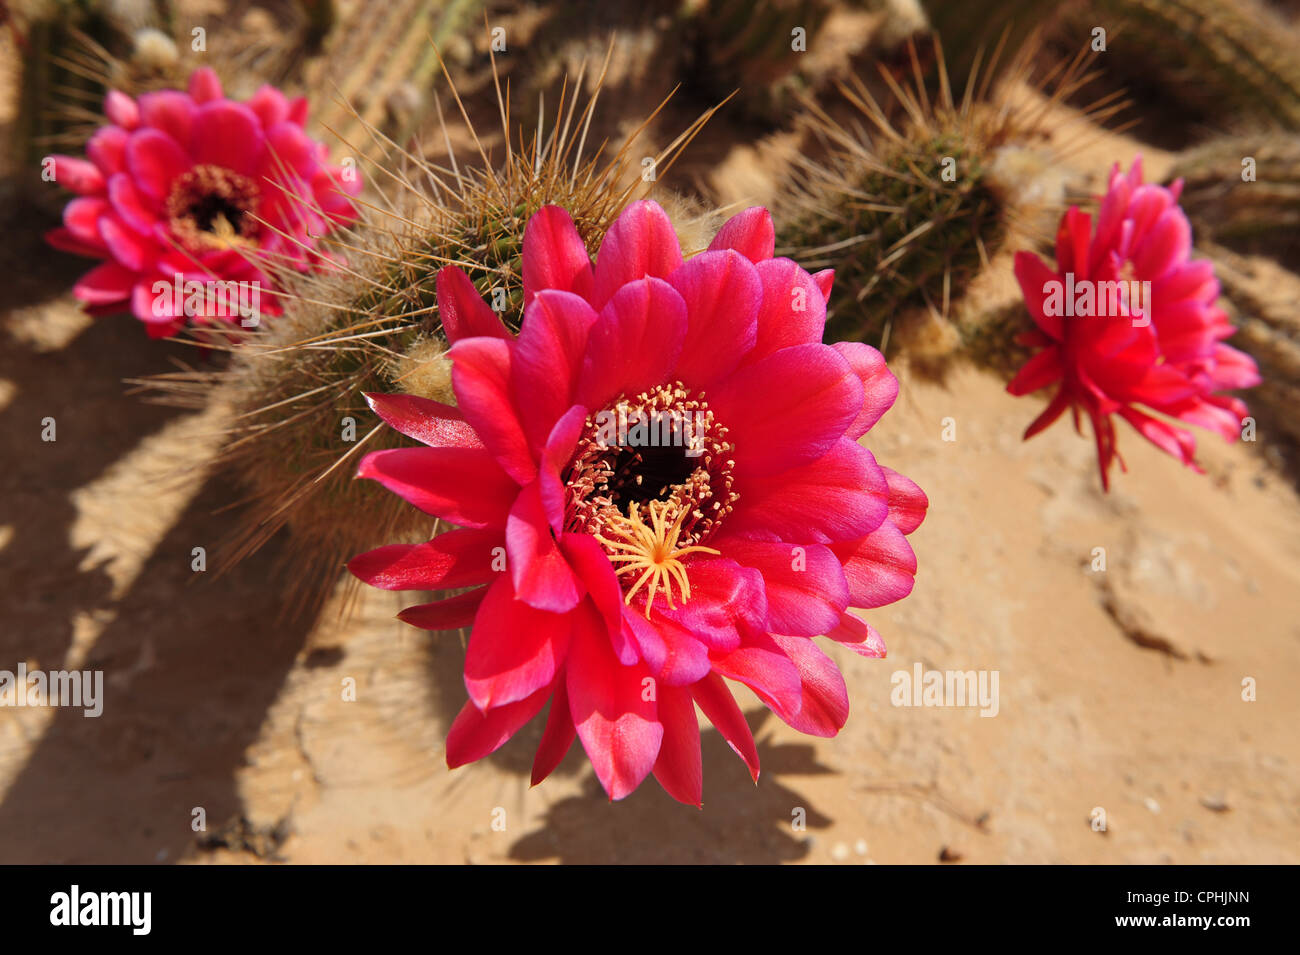 Round Cactus Pink Flowers Stock Photos Round Cactus Pink Flowers